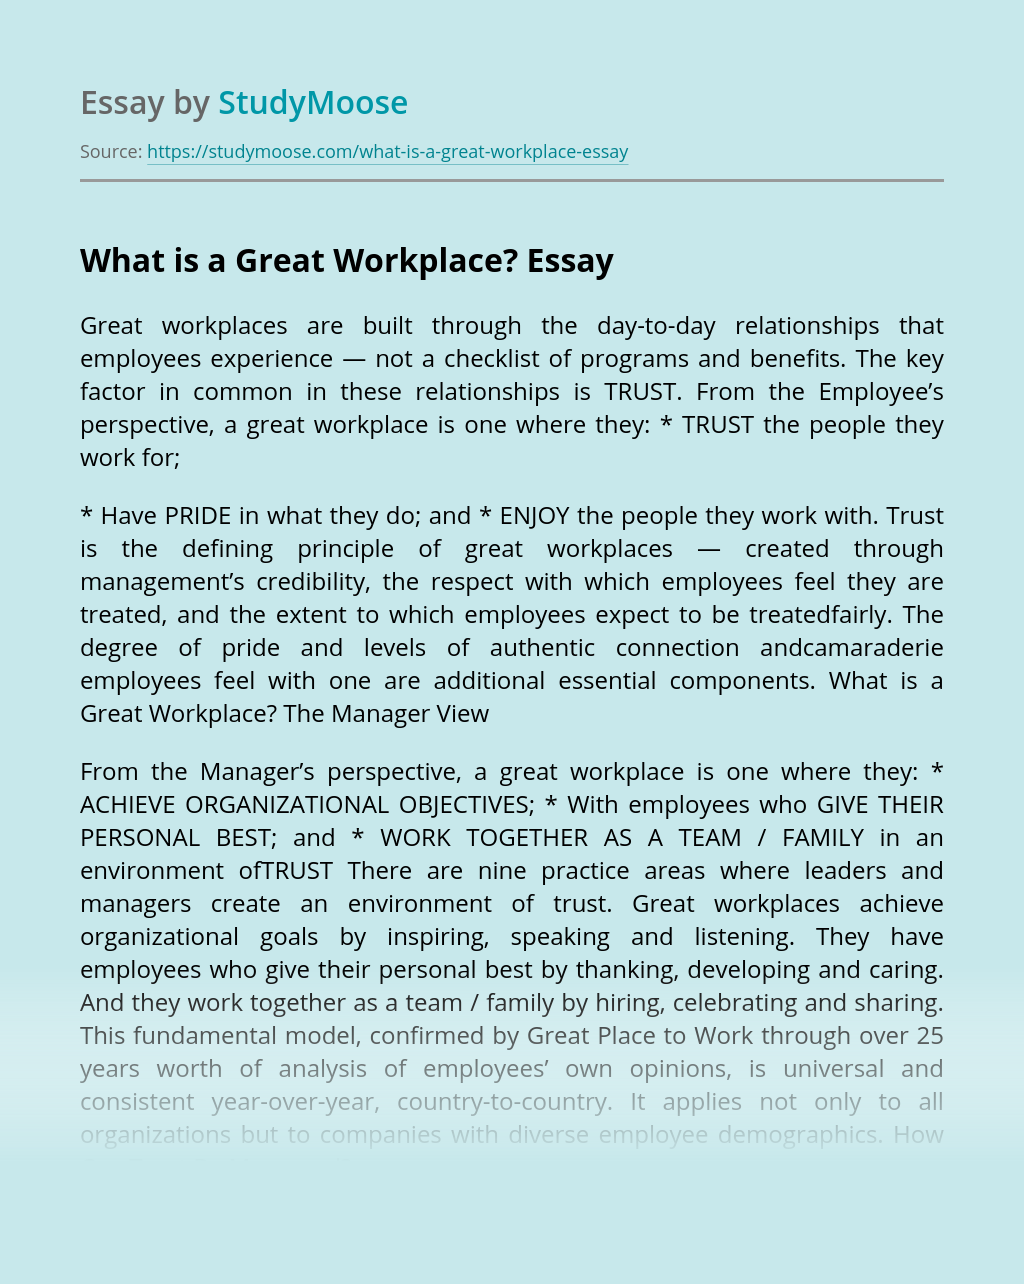 What is a Great Workplace?